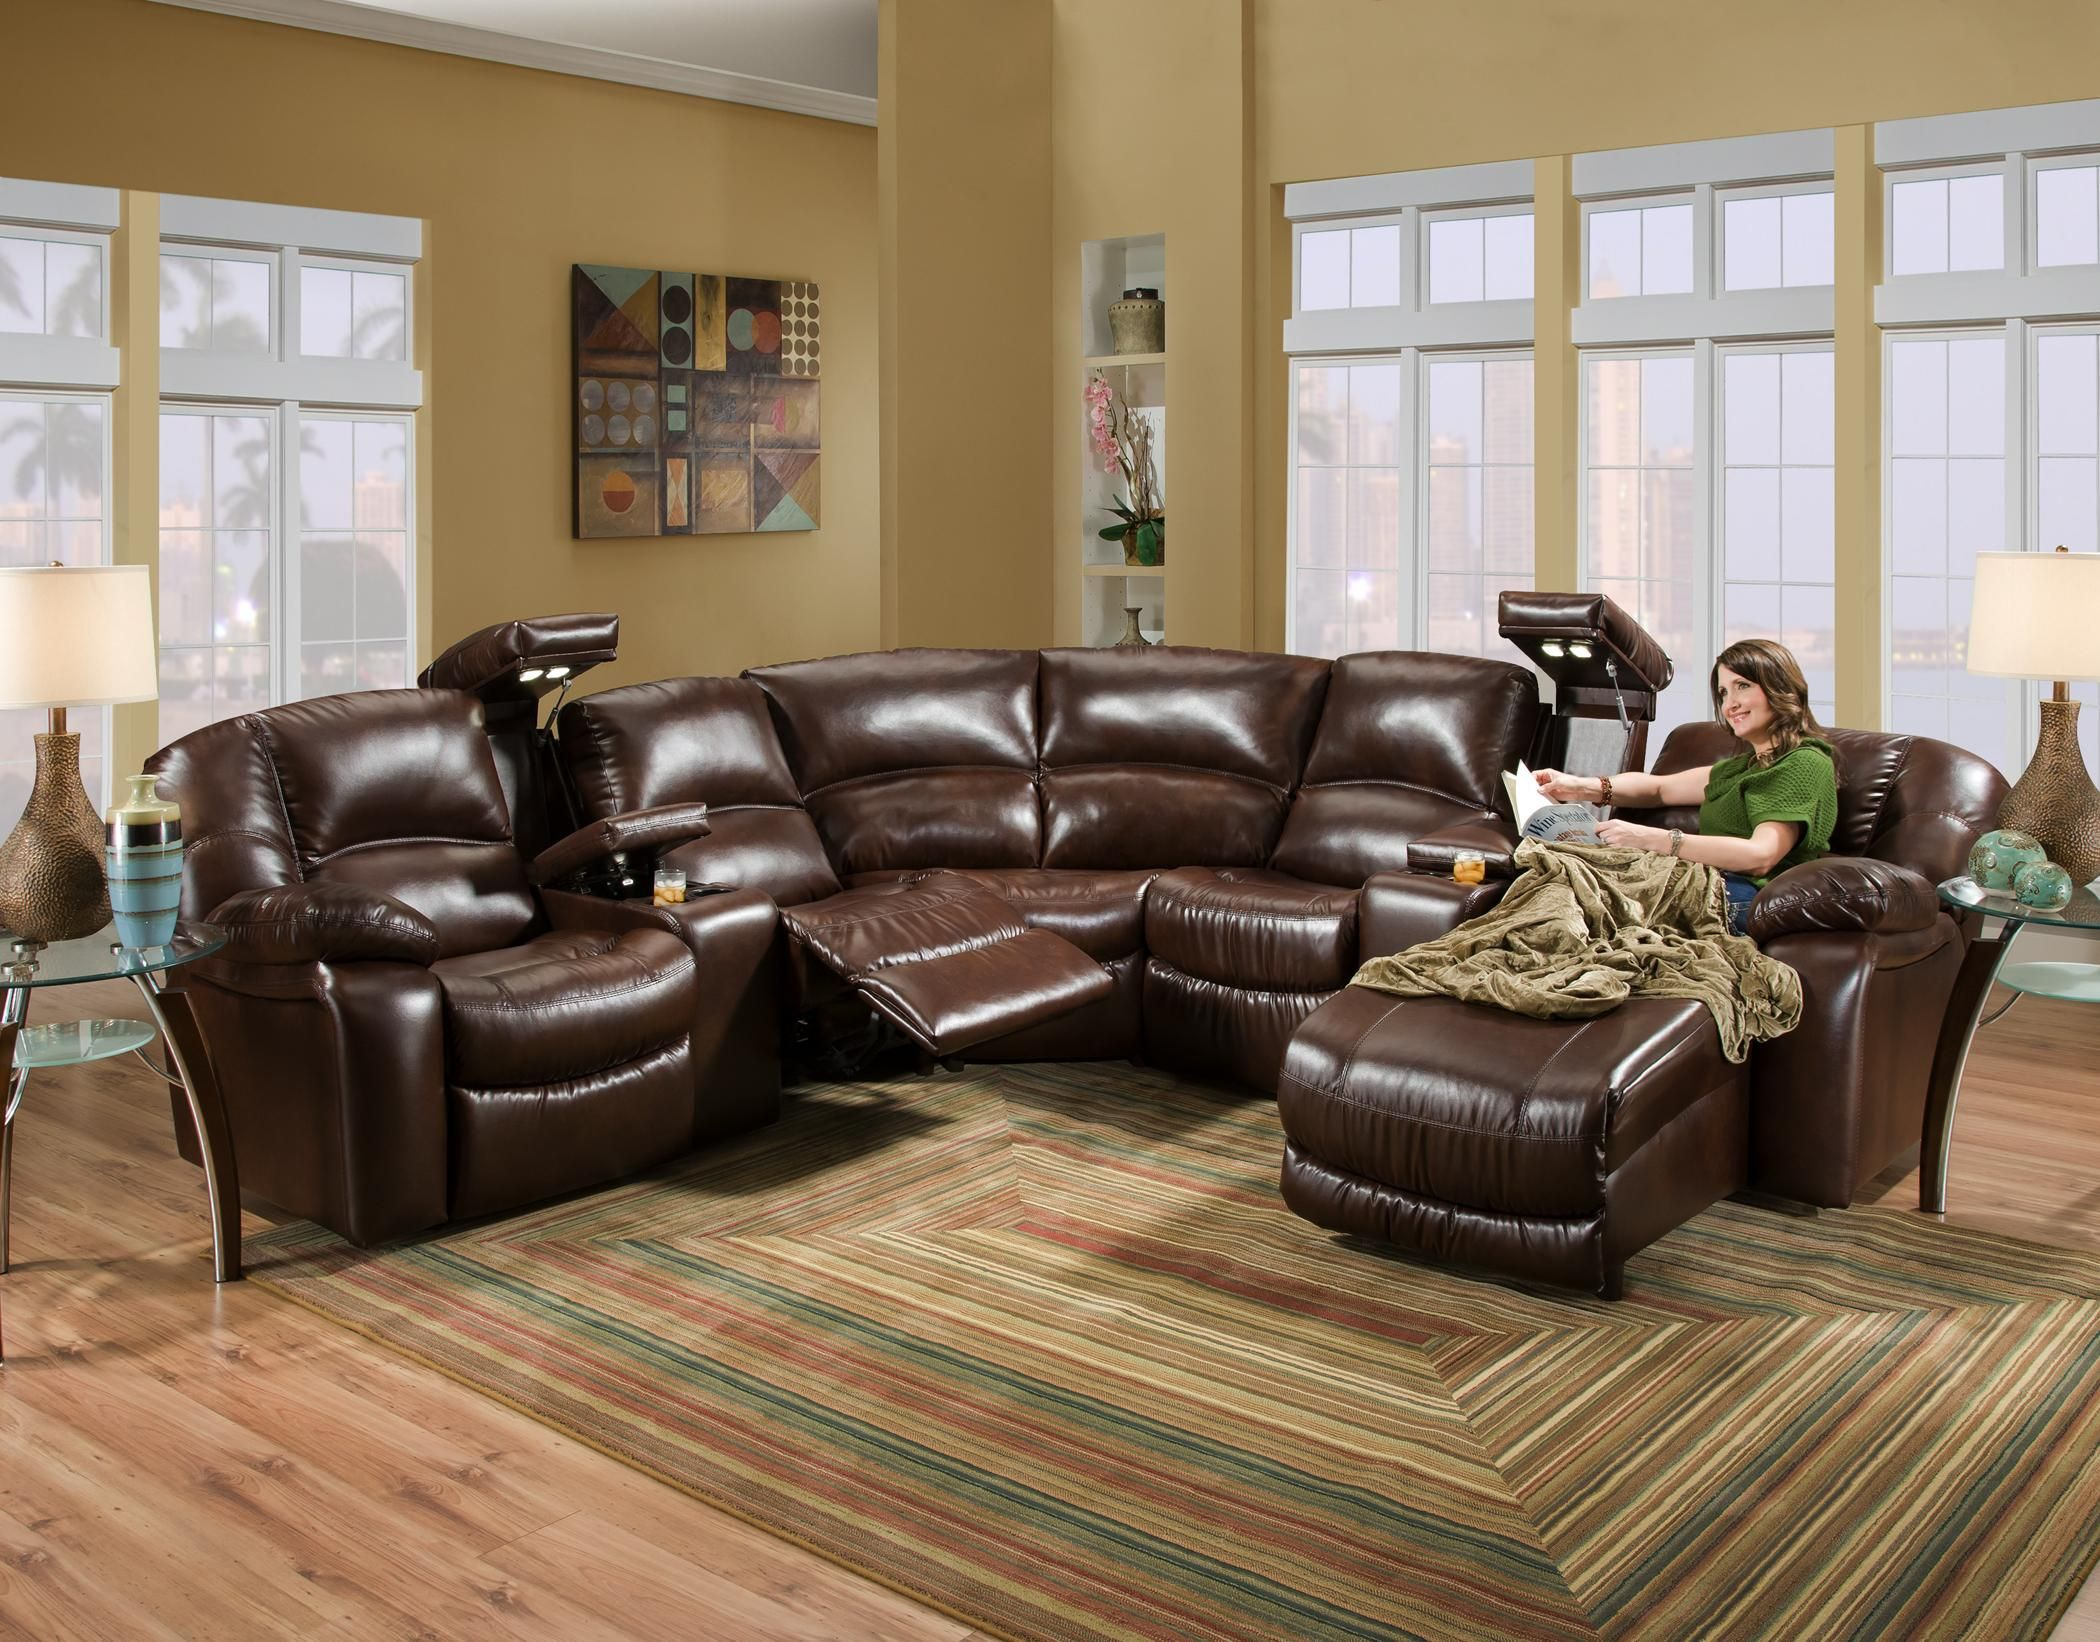 Leather sectional with chase | Redecorating | Pinterest | Leather ...